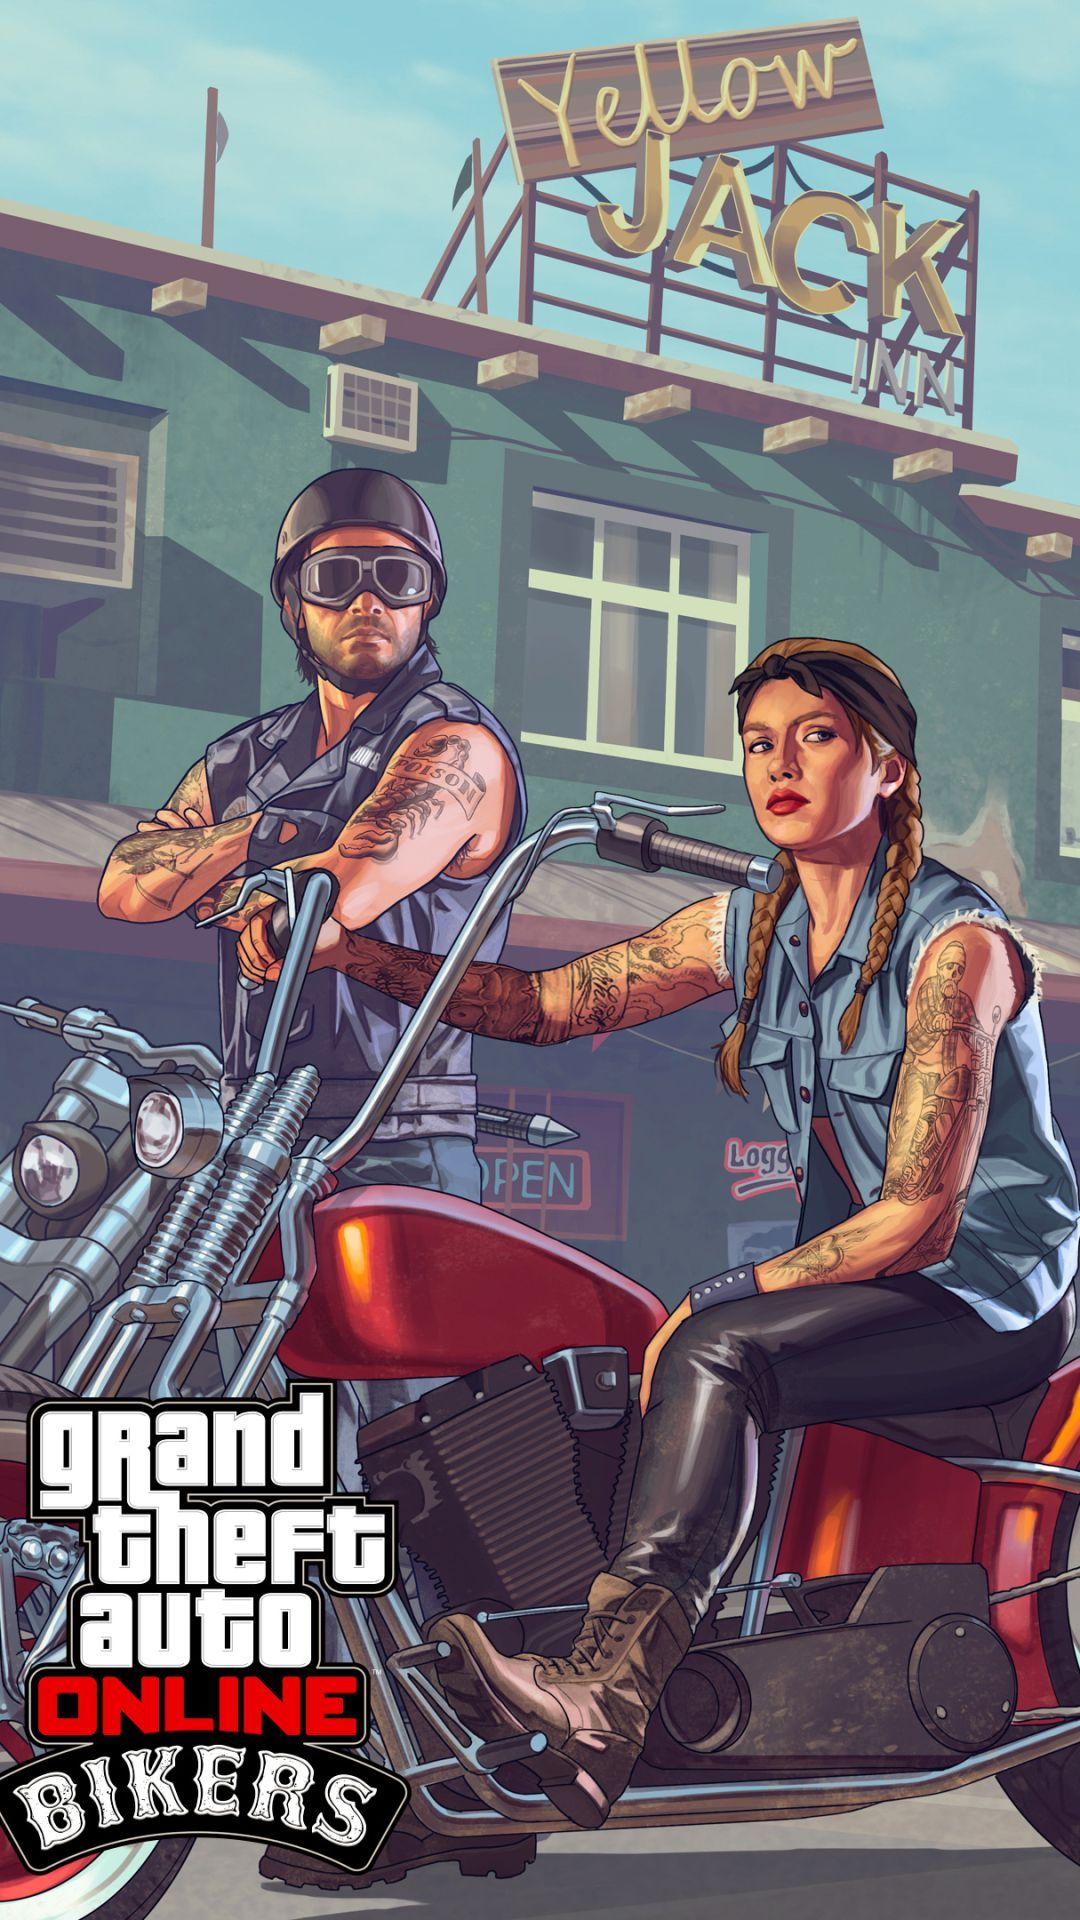 Gta V Wallpaper Home Screen In 2020 Grand Theft Auto Grand Theft Auto Series Grand Theft Auto Artwork